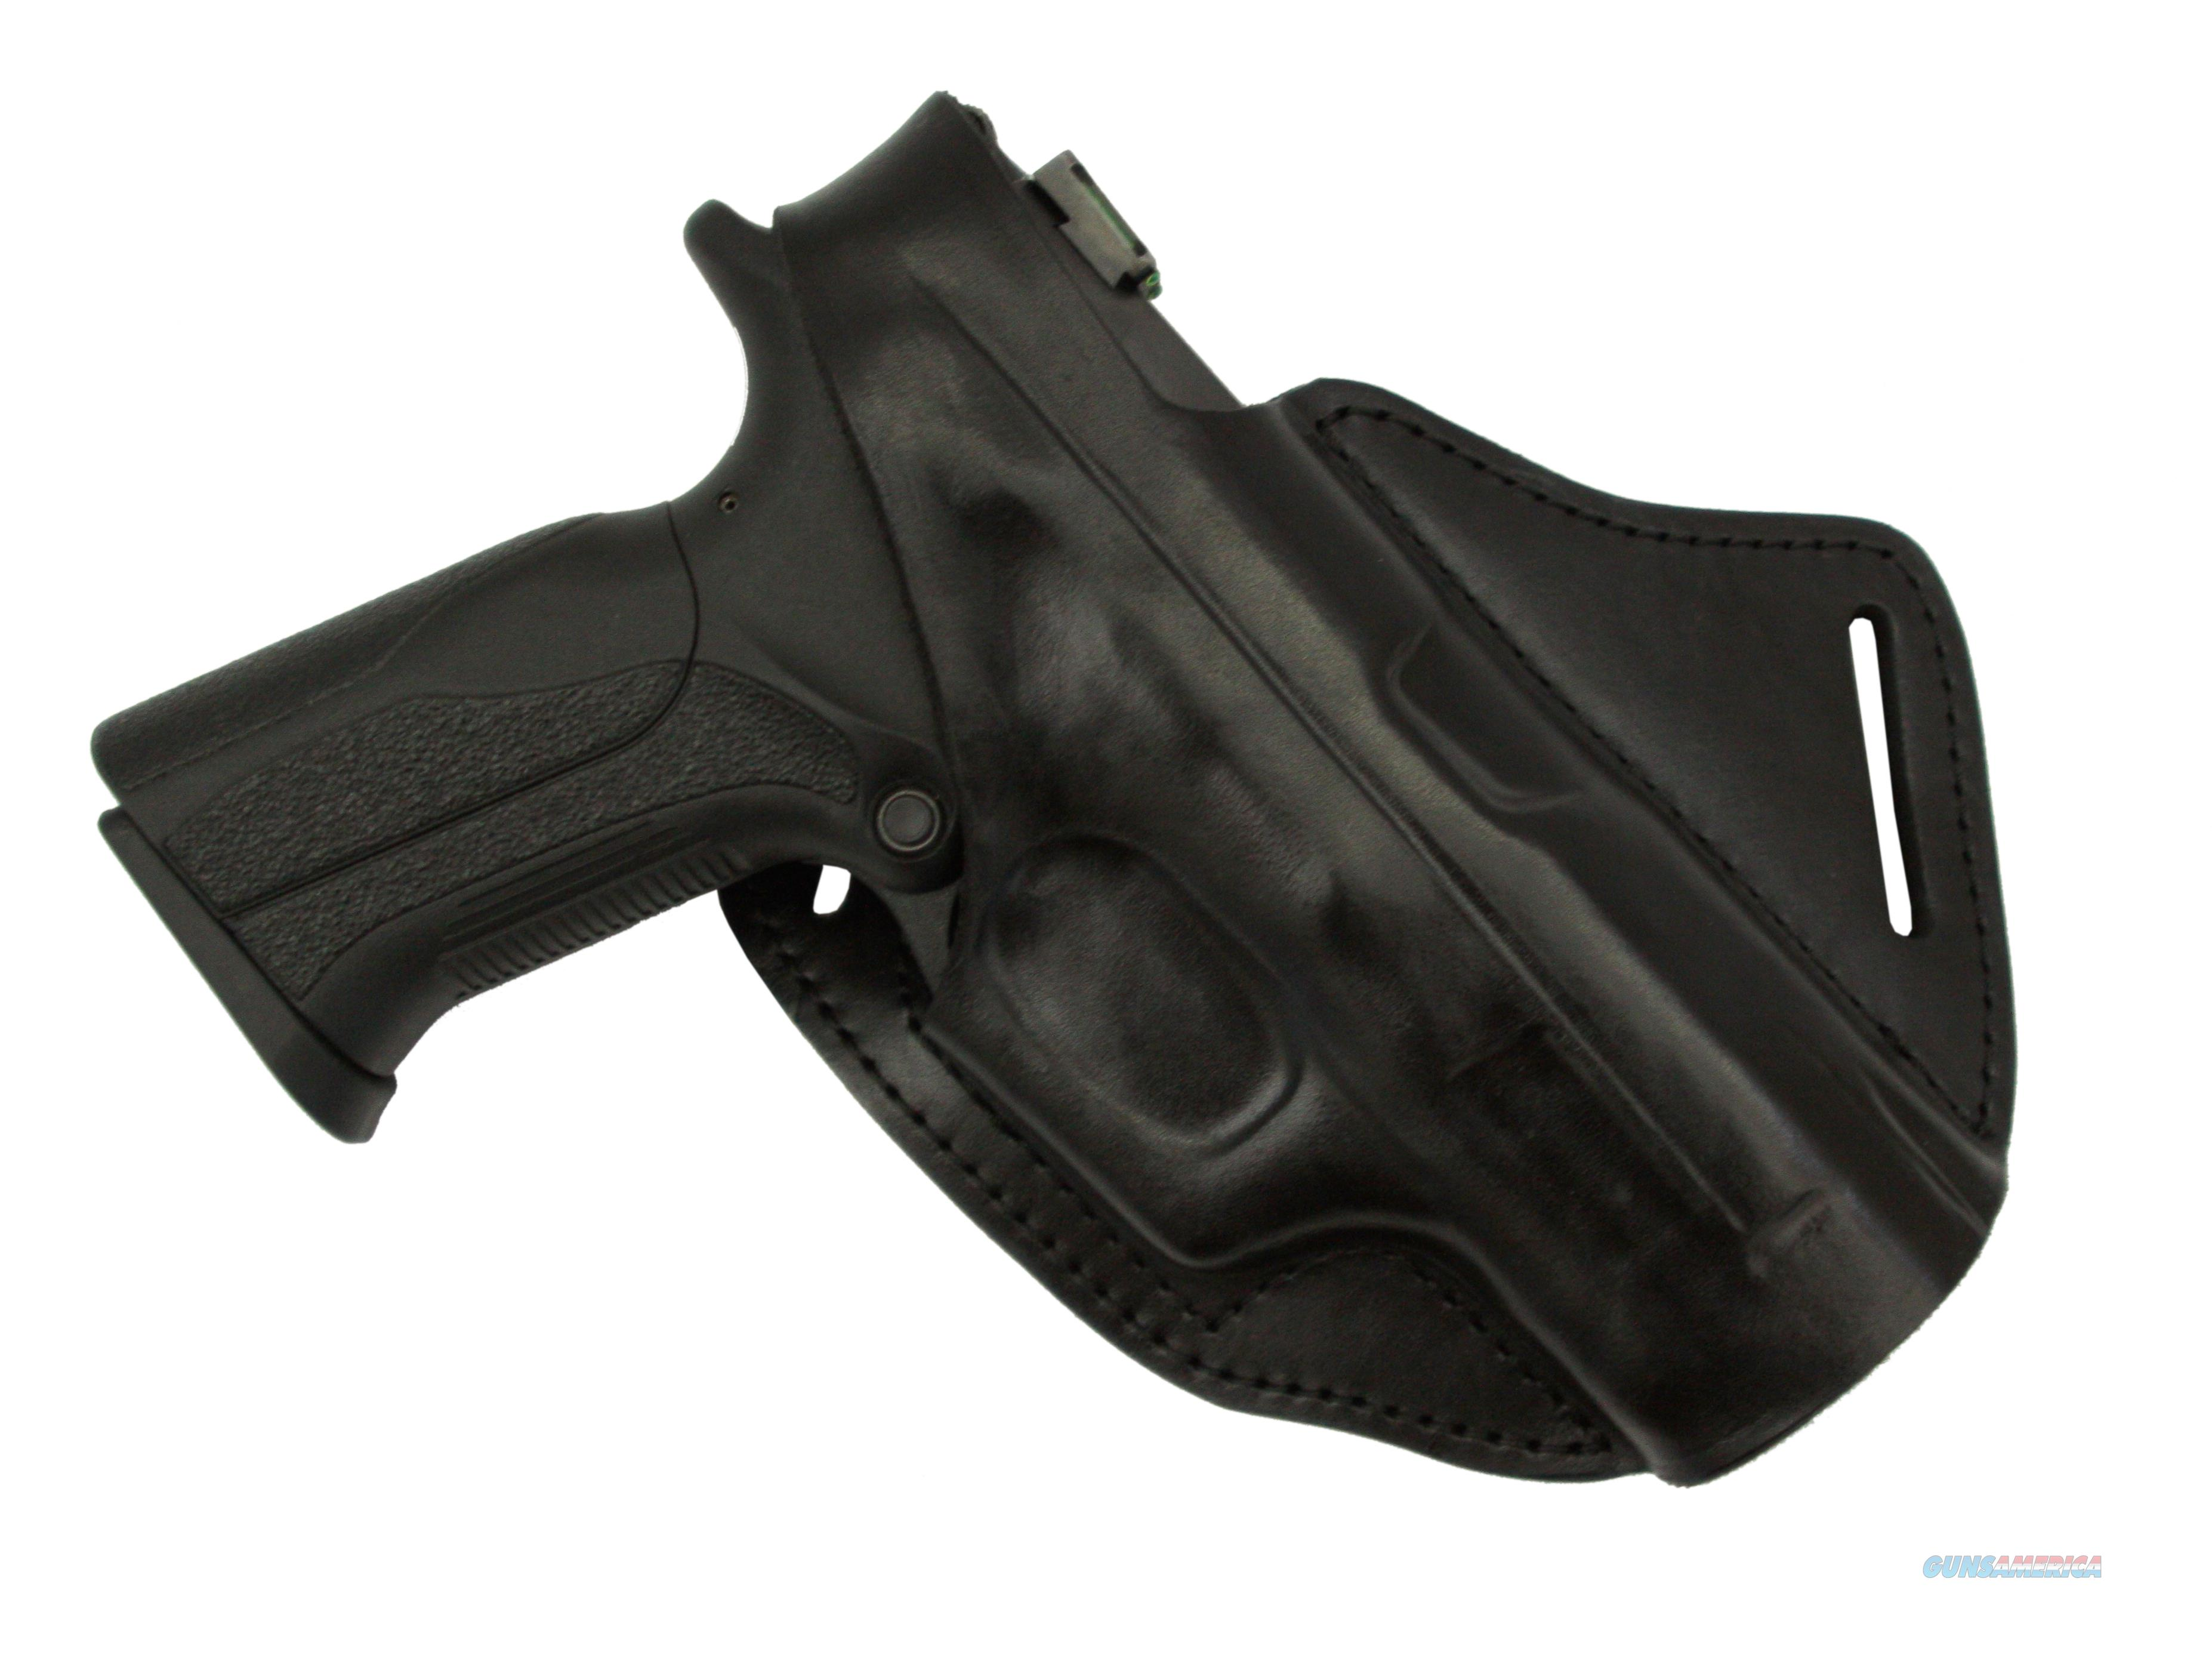 Cross Draw leather belt holster Smith & Wesson MP9  Non-Guns > Holsters and Gunleather > Concealed Carry